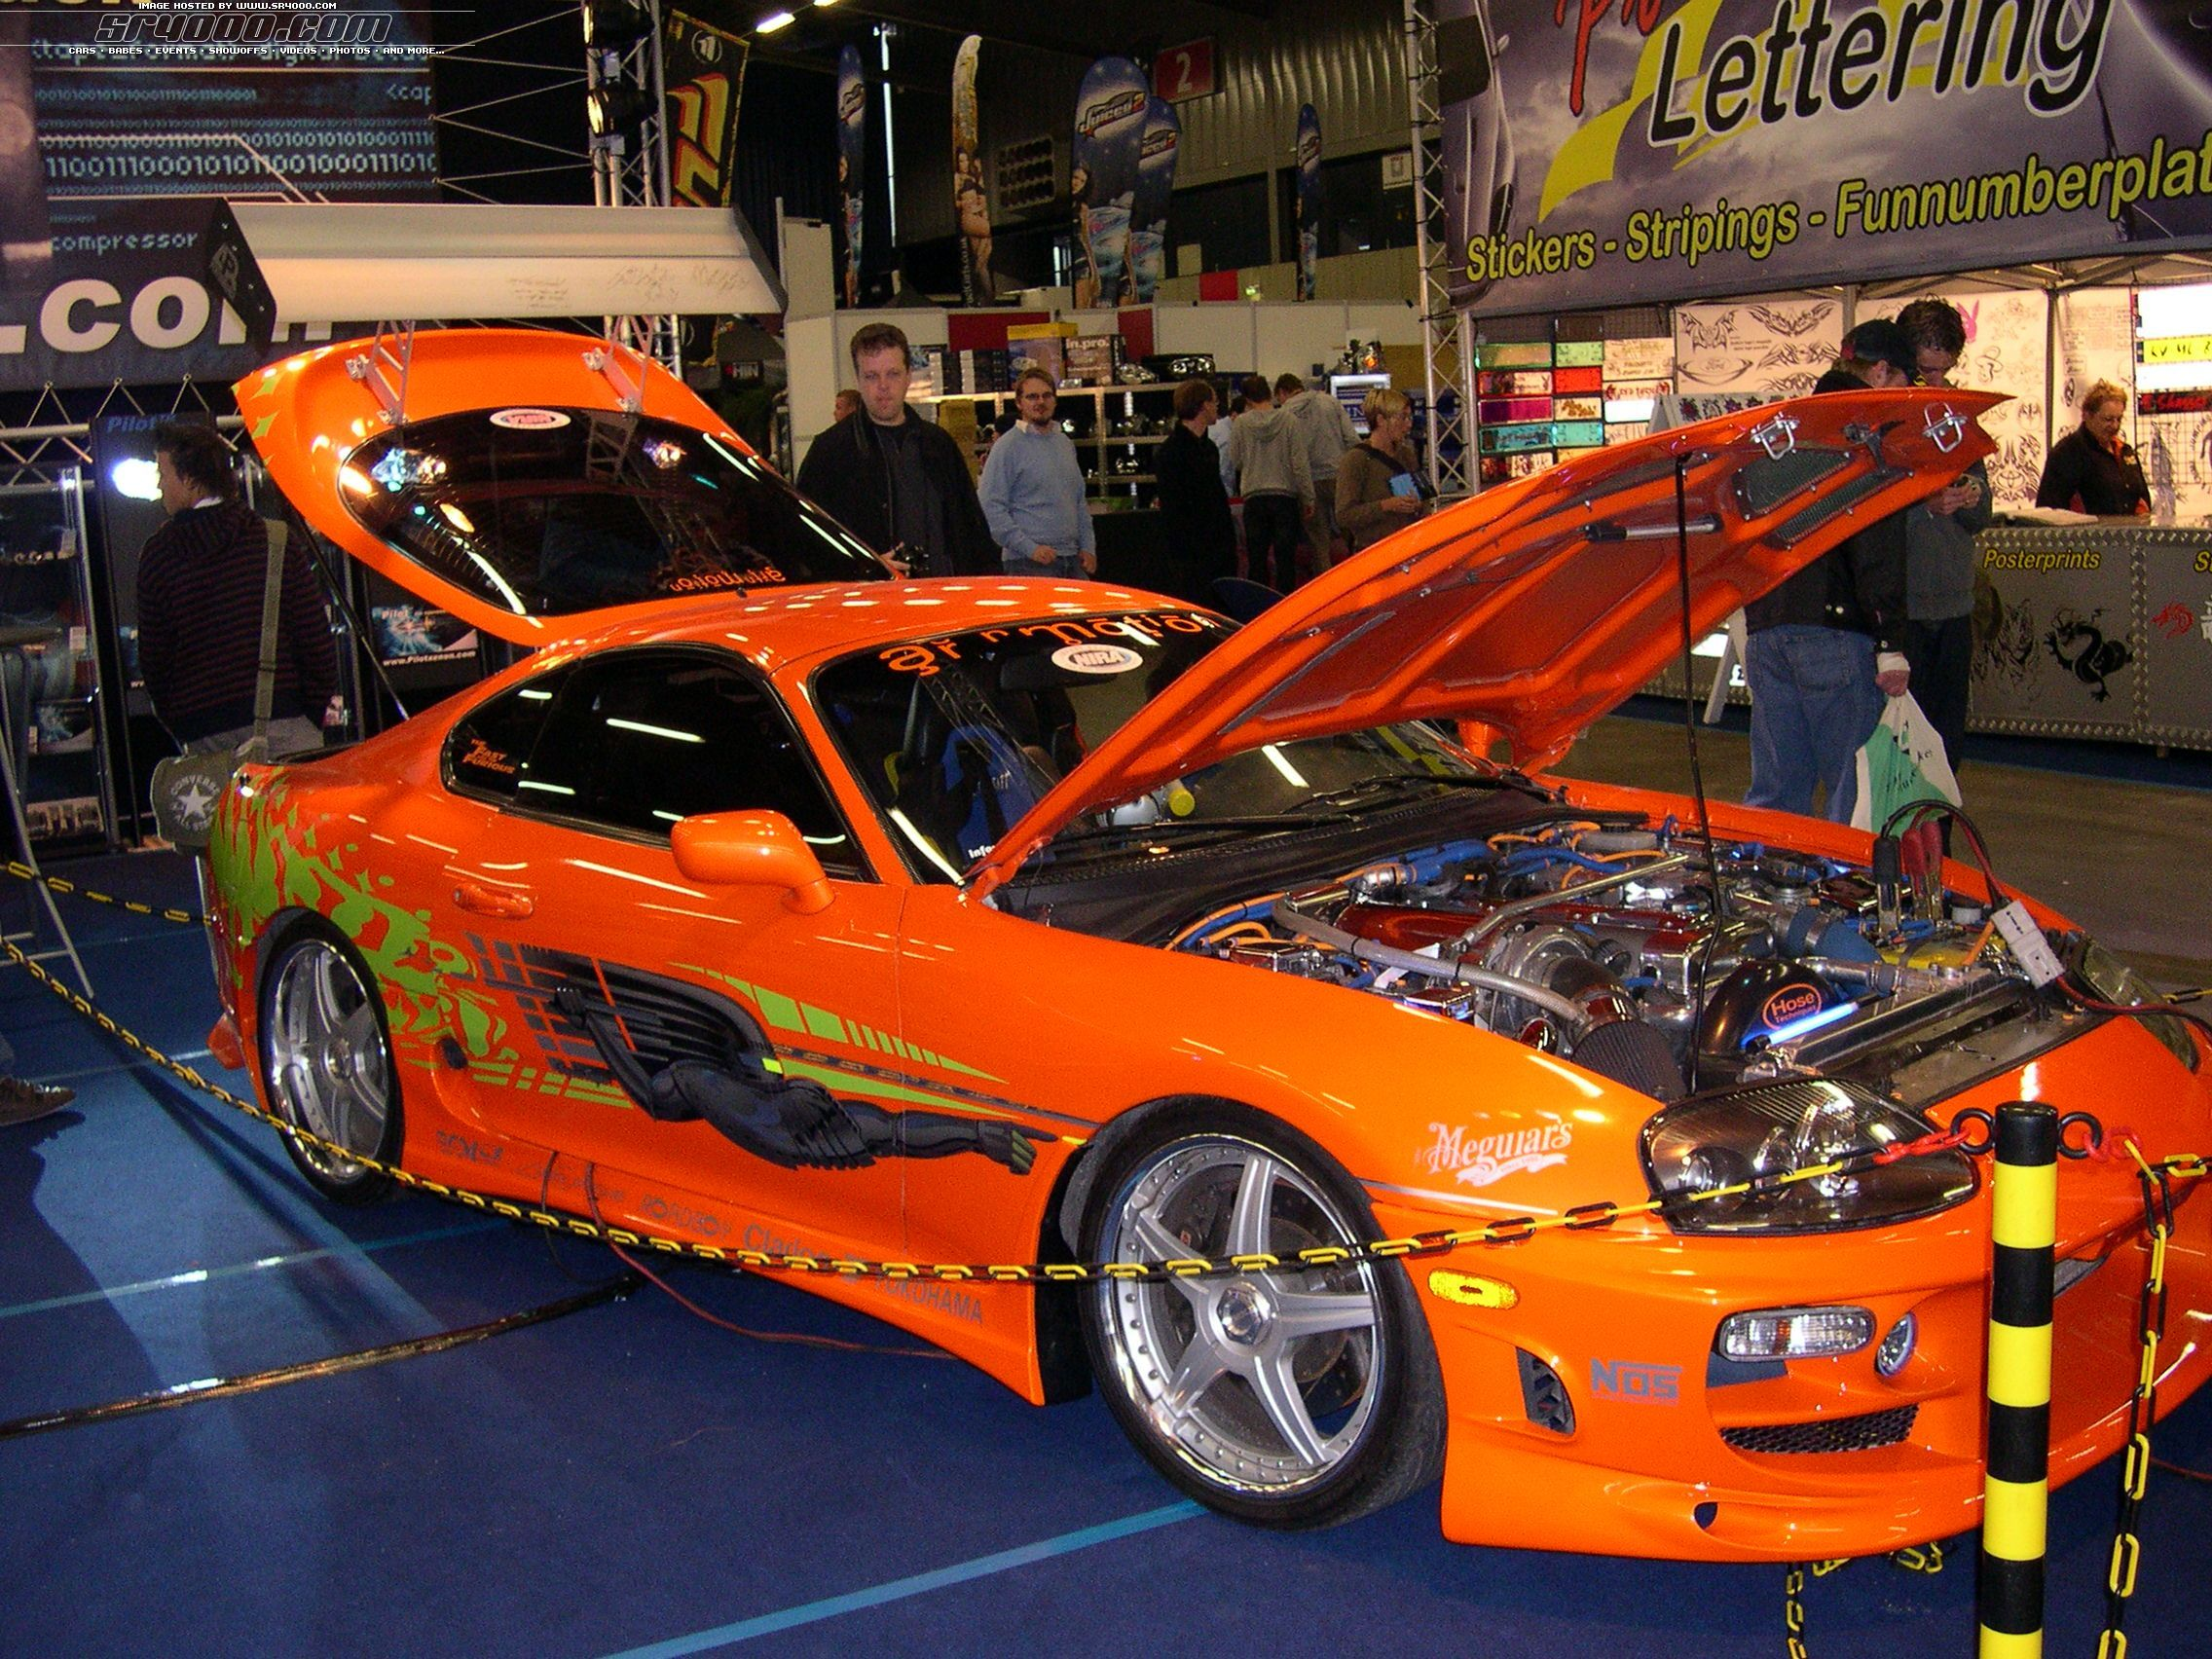 Toyota Supra From The Fast And The Furious Toyota Supra Fast And Furious Cars Pinterest Toyota Cars